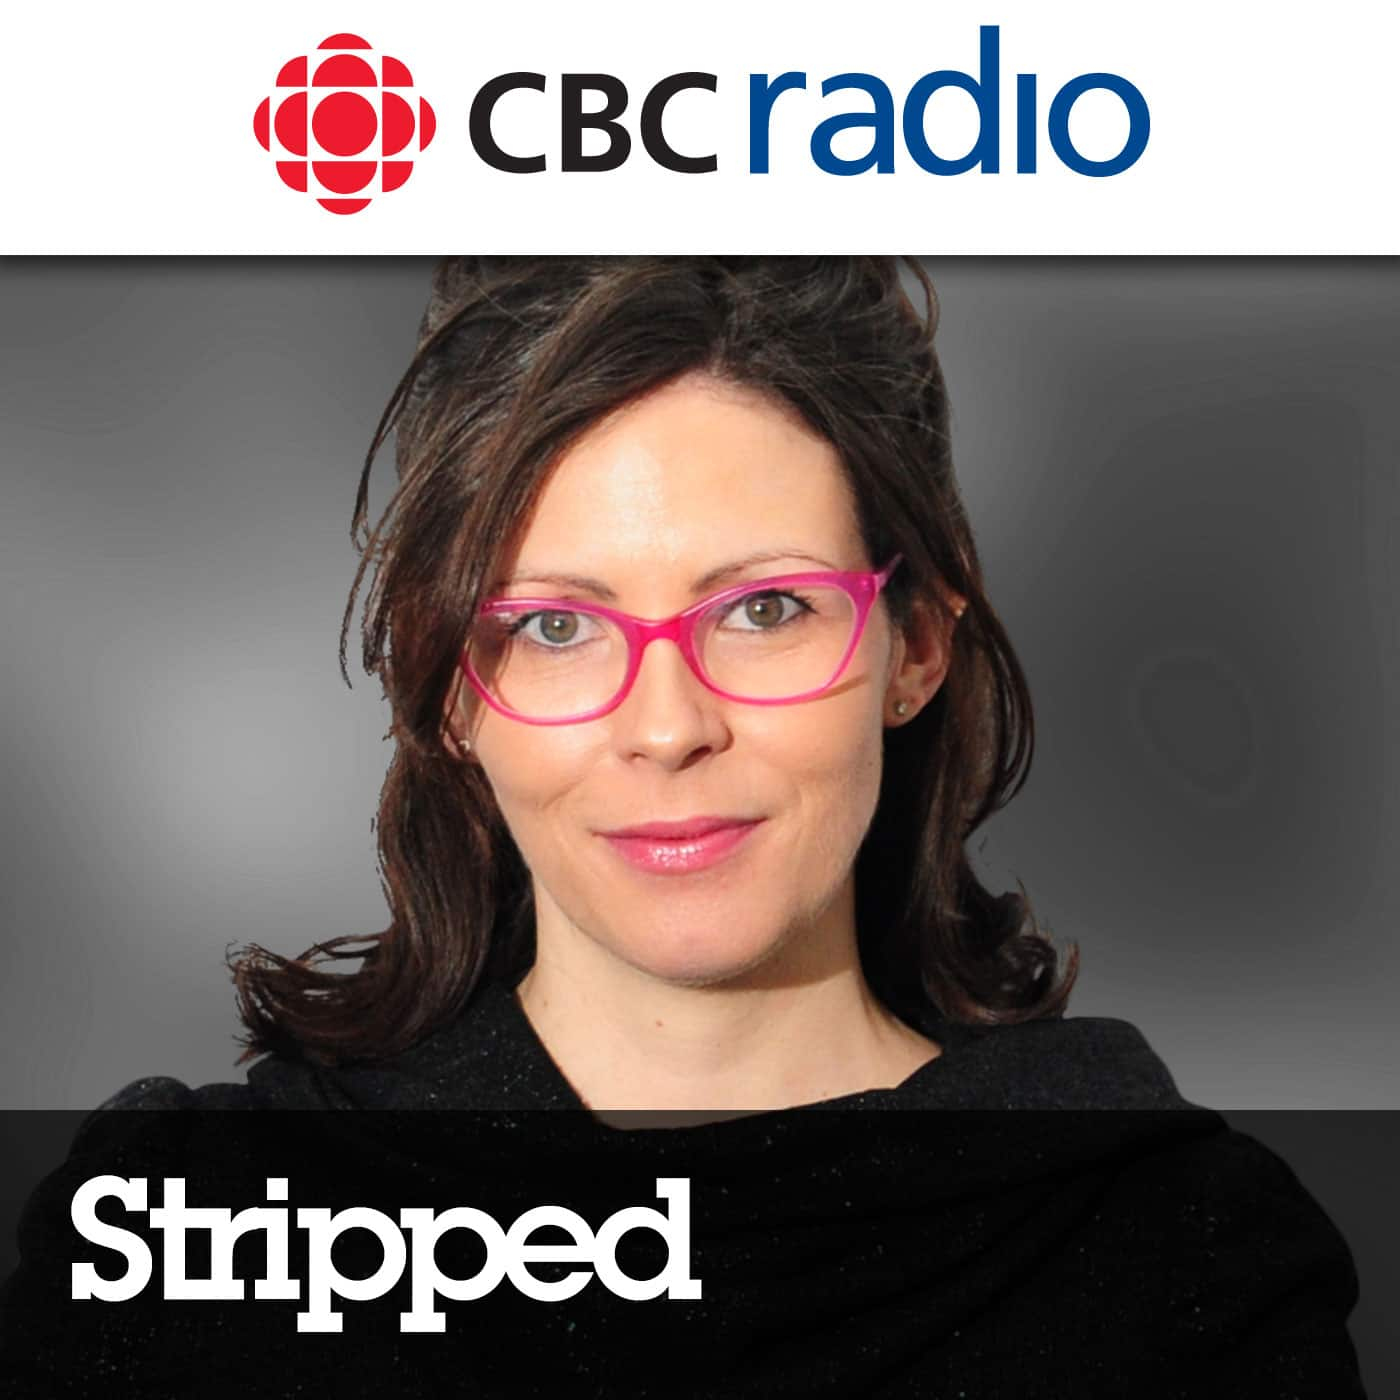 Stripped from CBC Radio